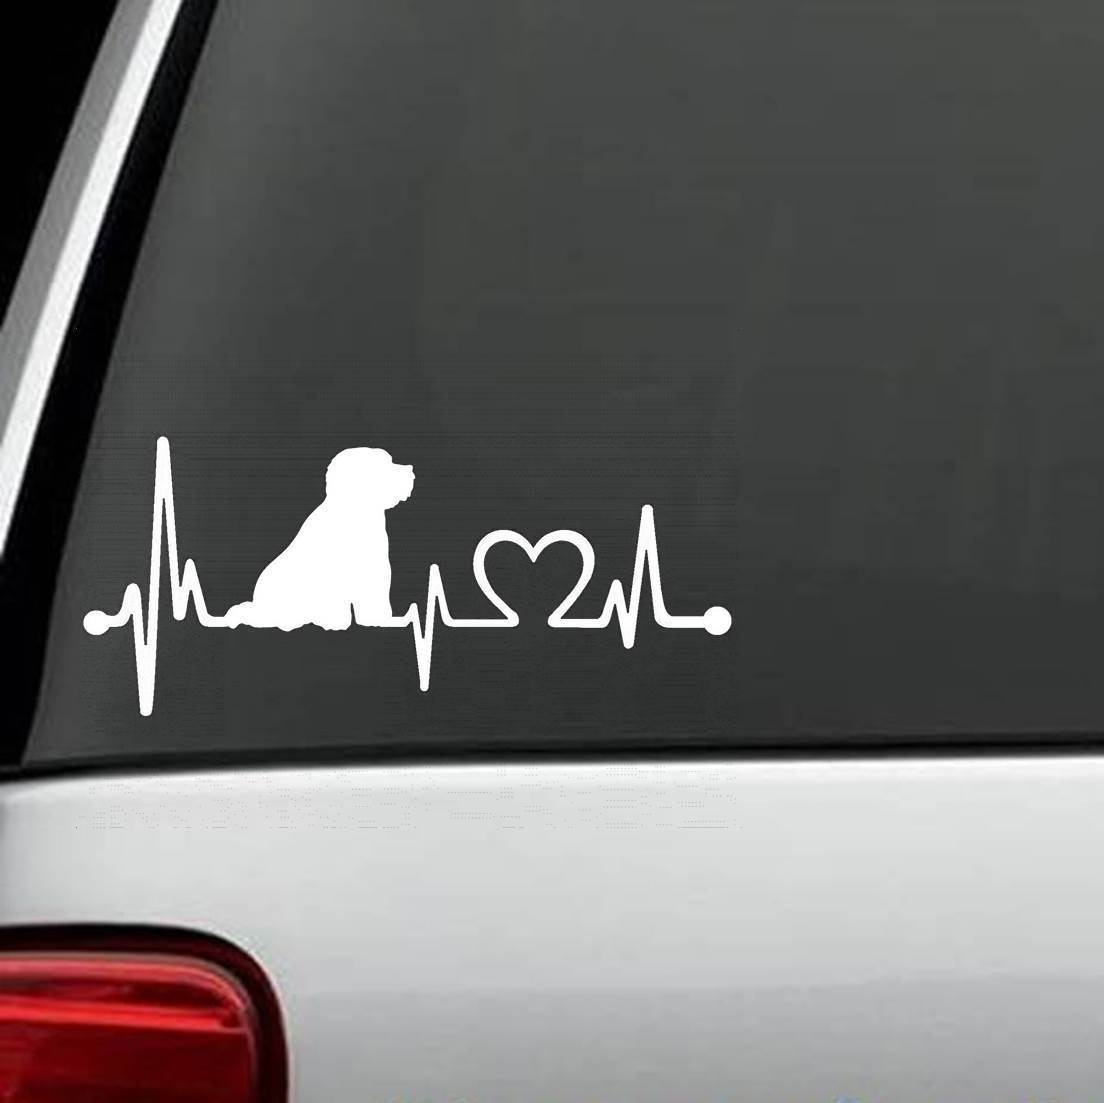 Frise Sticker For Bichon Frise Heartbeat Lifeline Monitor Dog Decal Sticker Car Styling